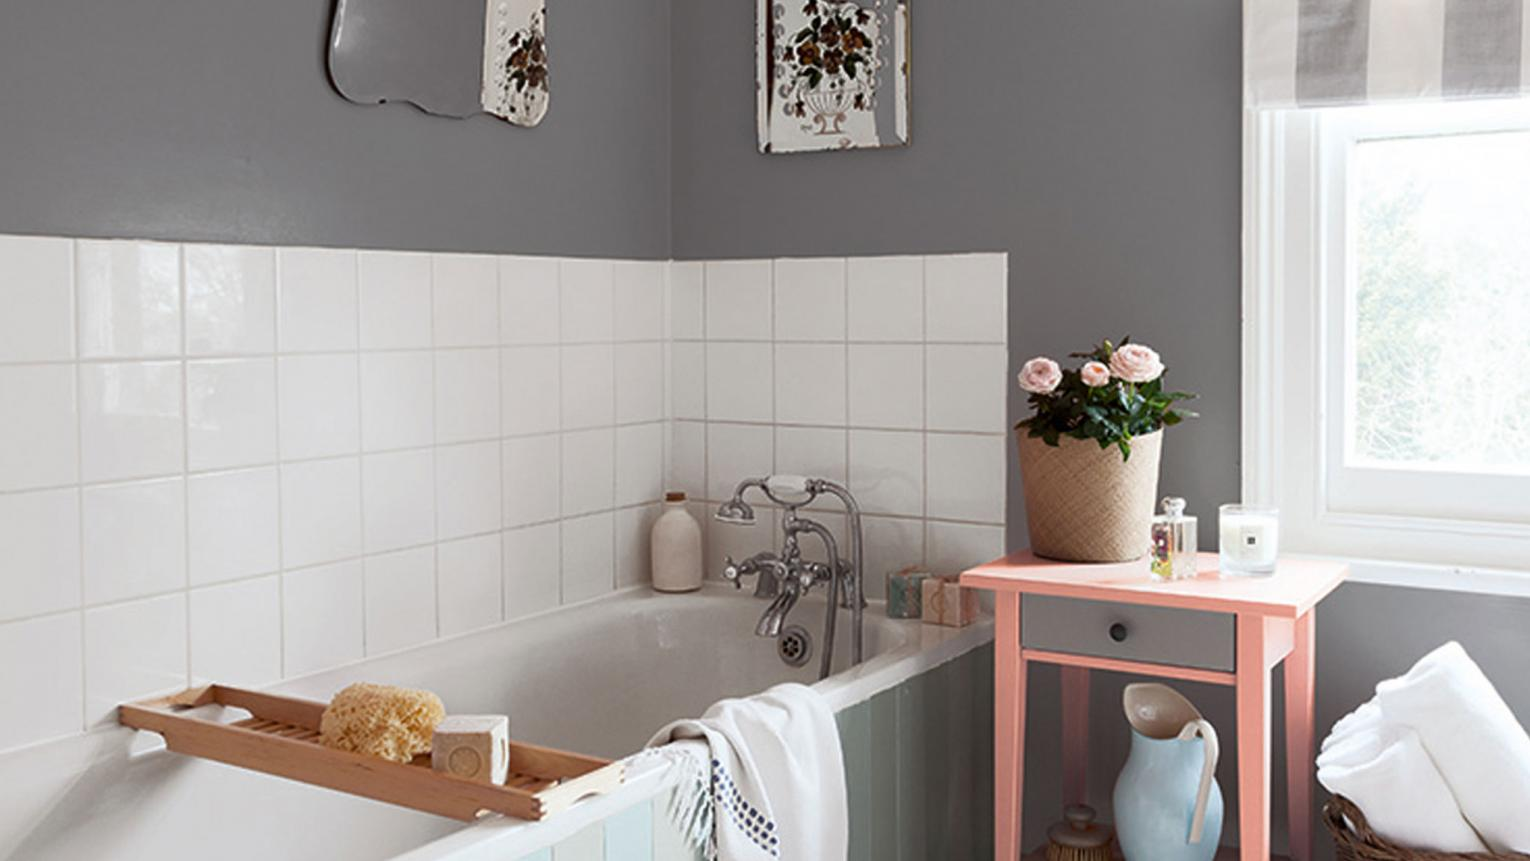 Turn your bathroom into a tranquil oasis with a warm grey colour scheme palette that exudes serenity.